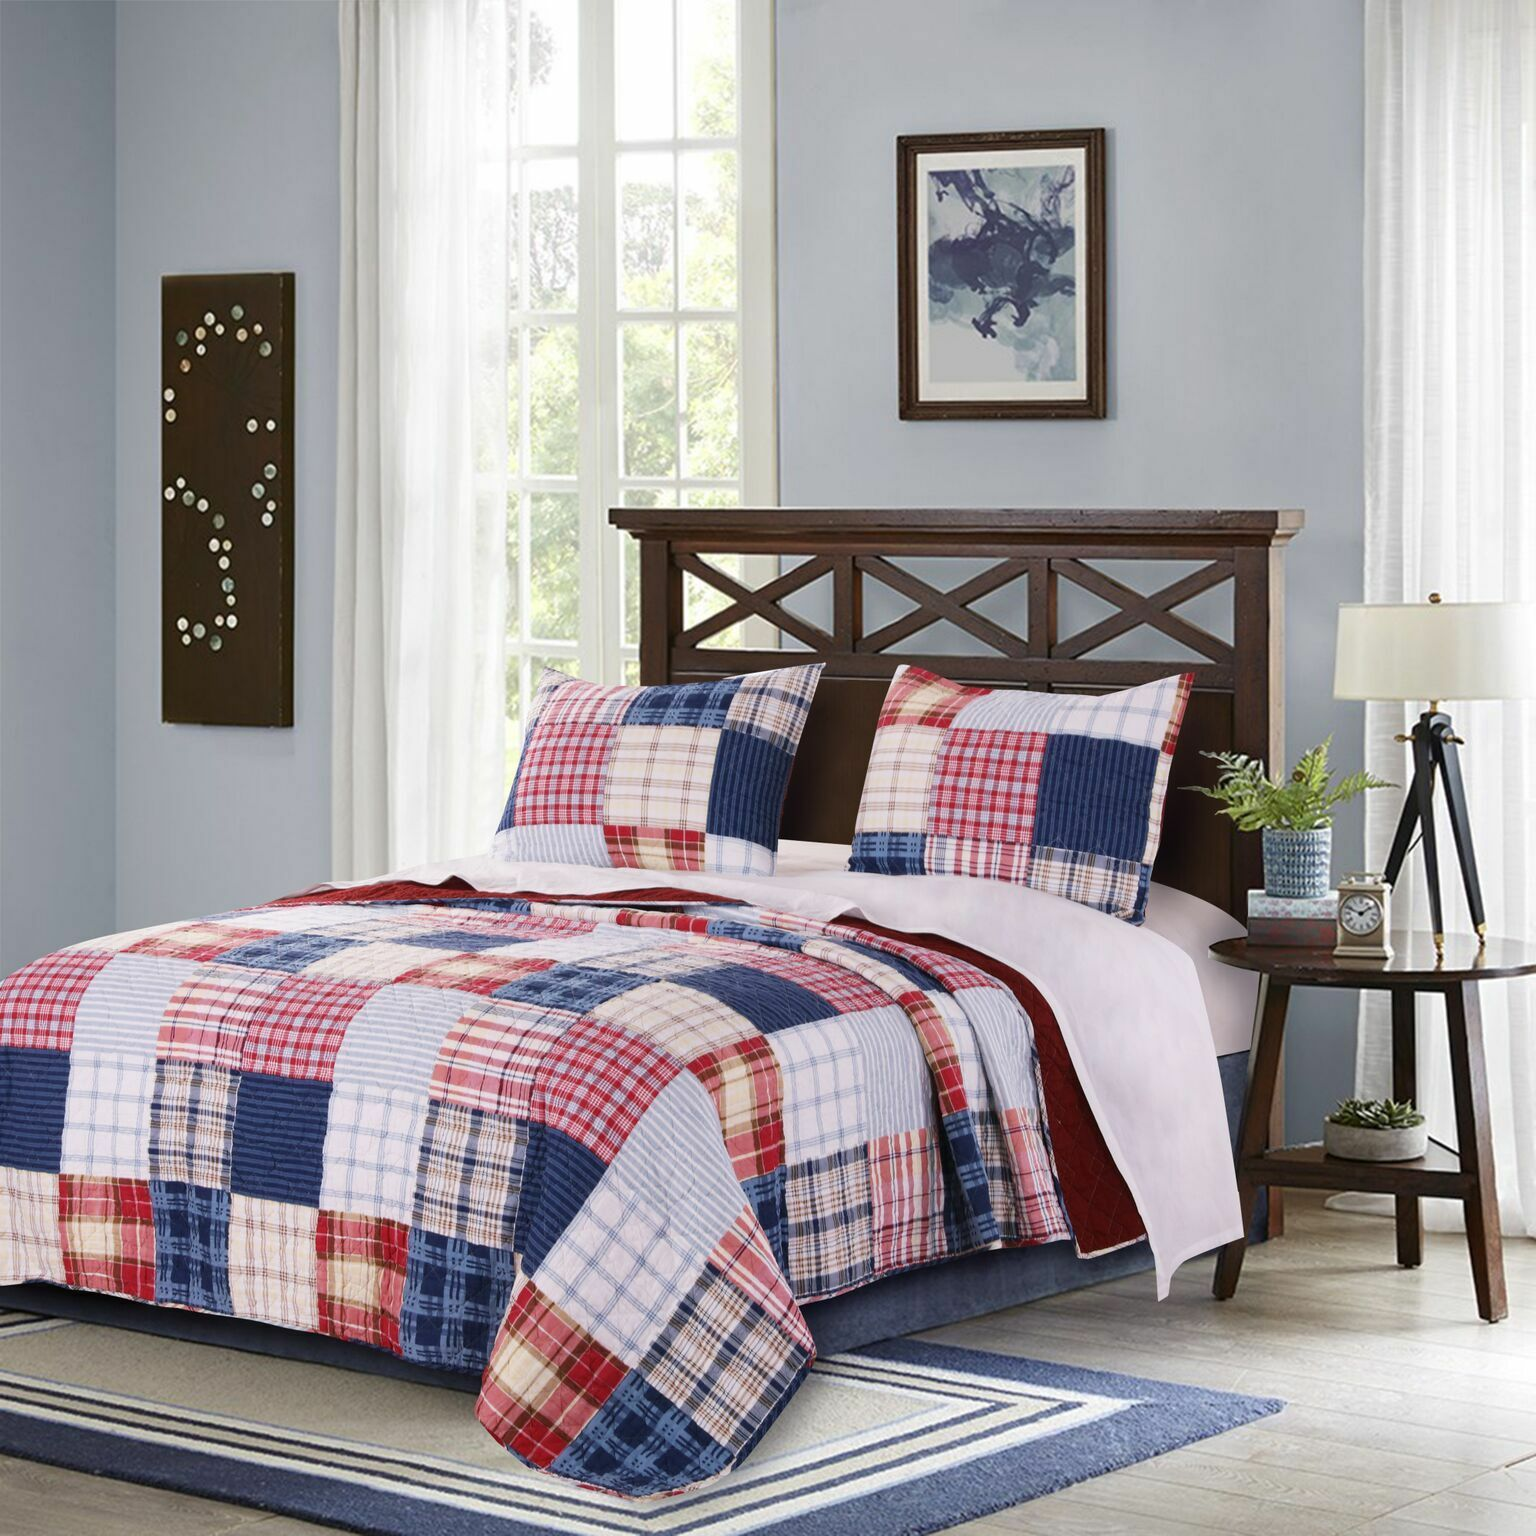 King Quilt Set Red bluee White Plaid Collegiate Americana Bedding